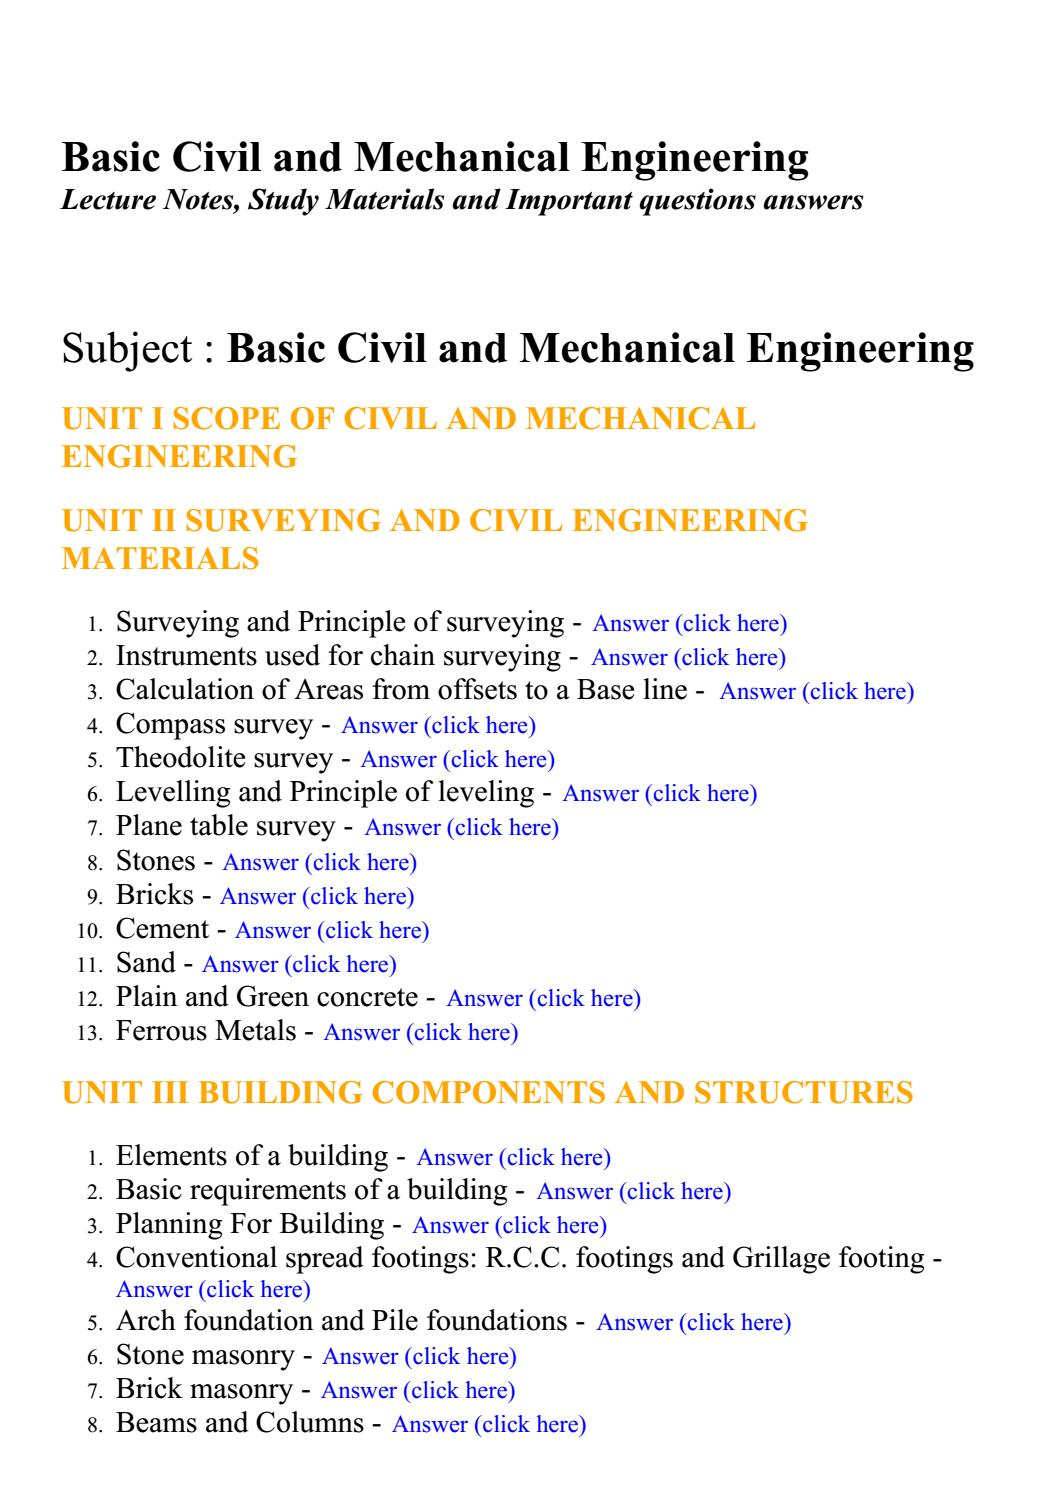 Basic civil and mechanical engineering - Lecture Notes